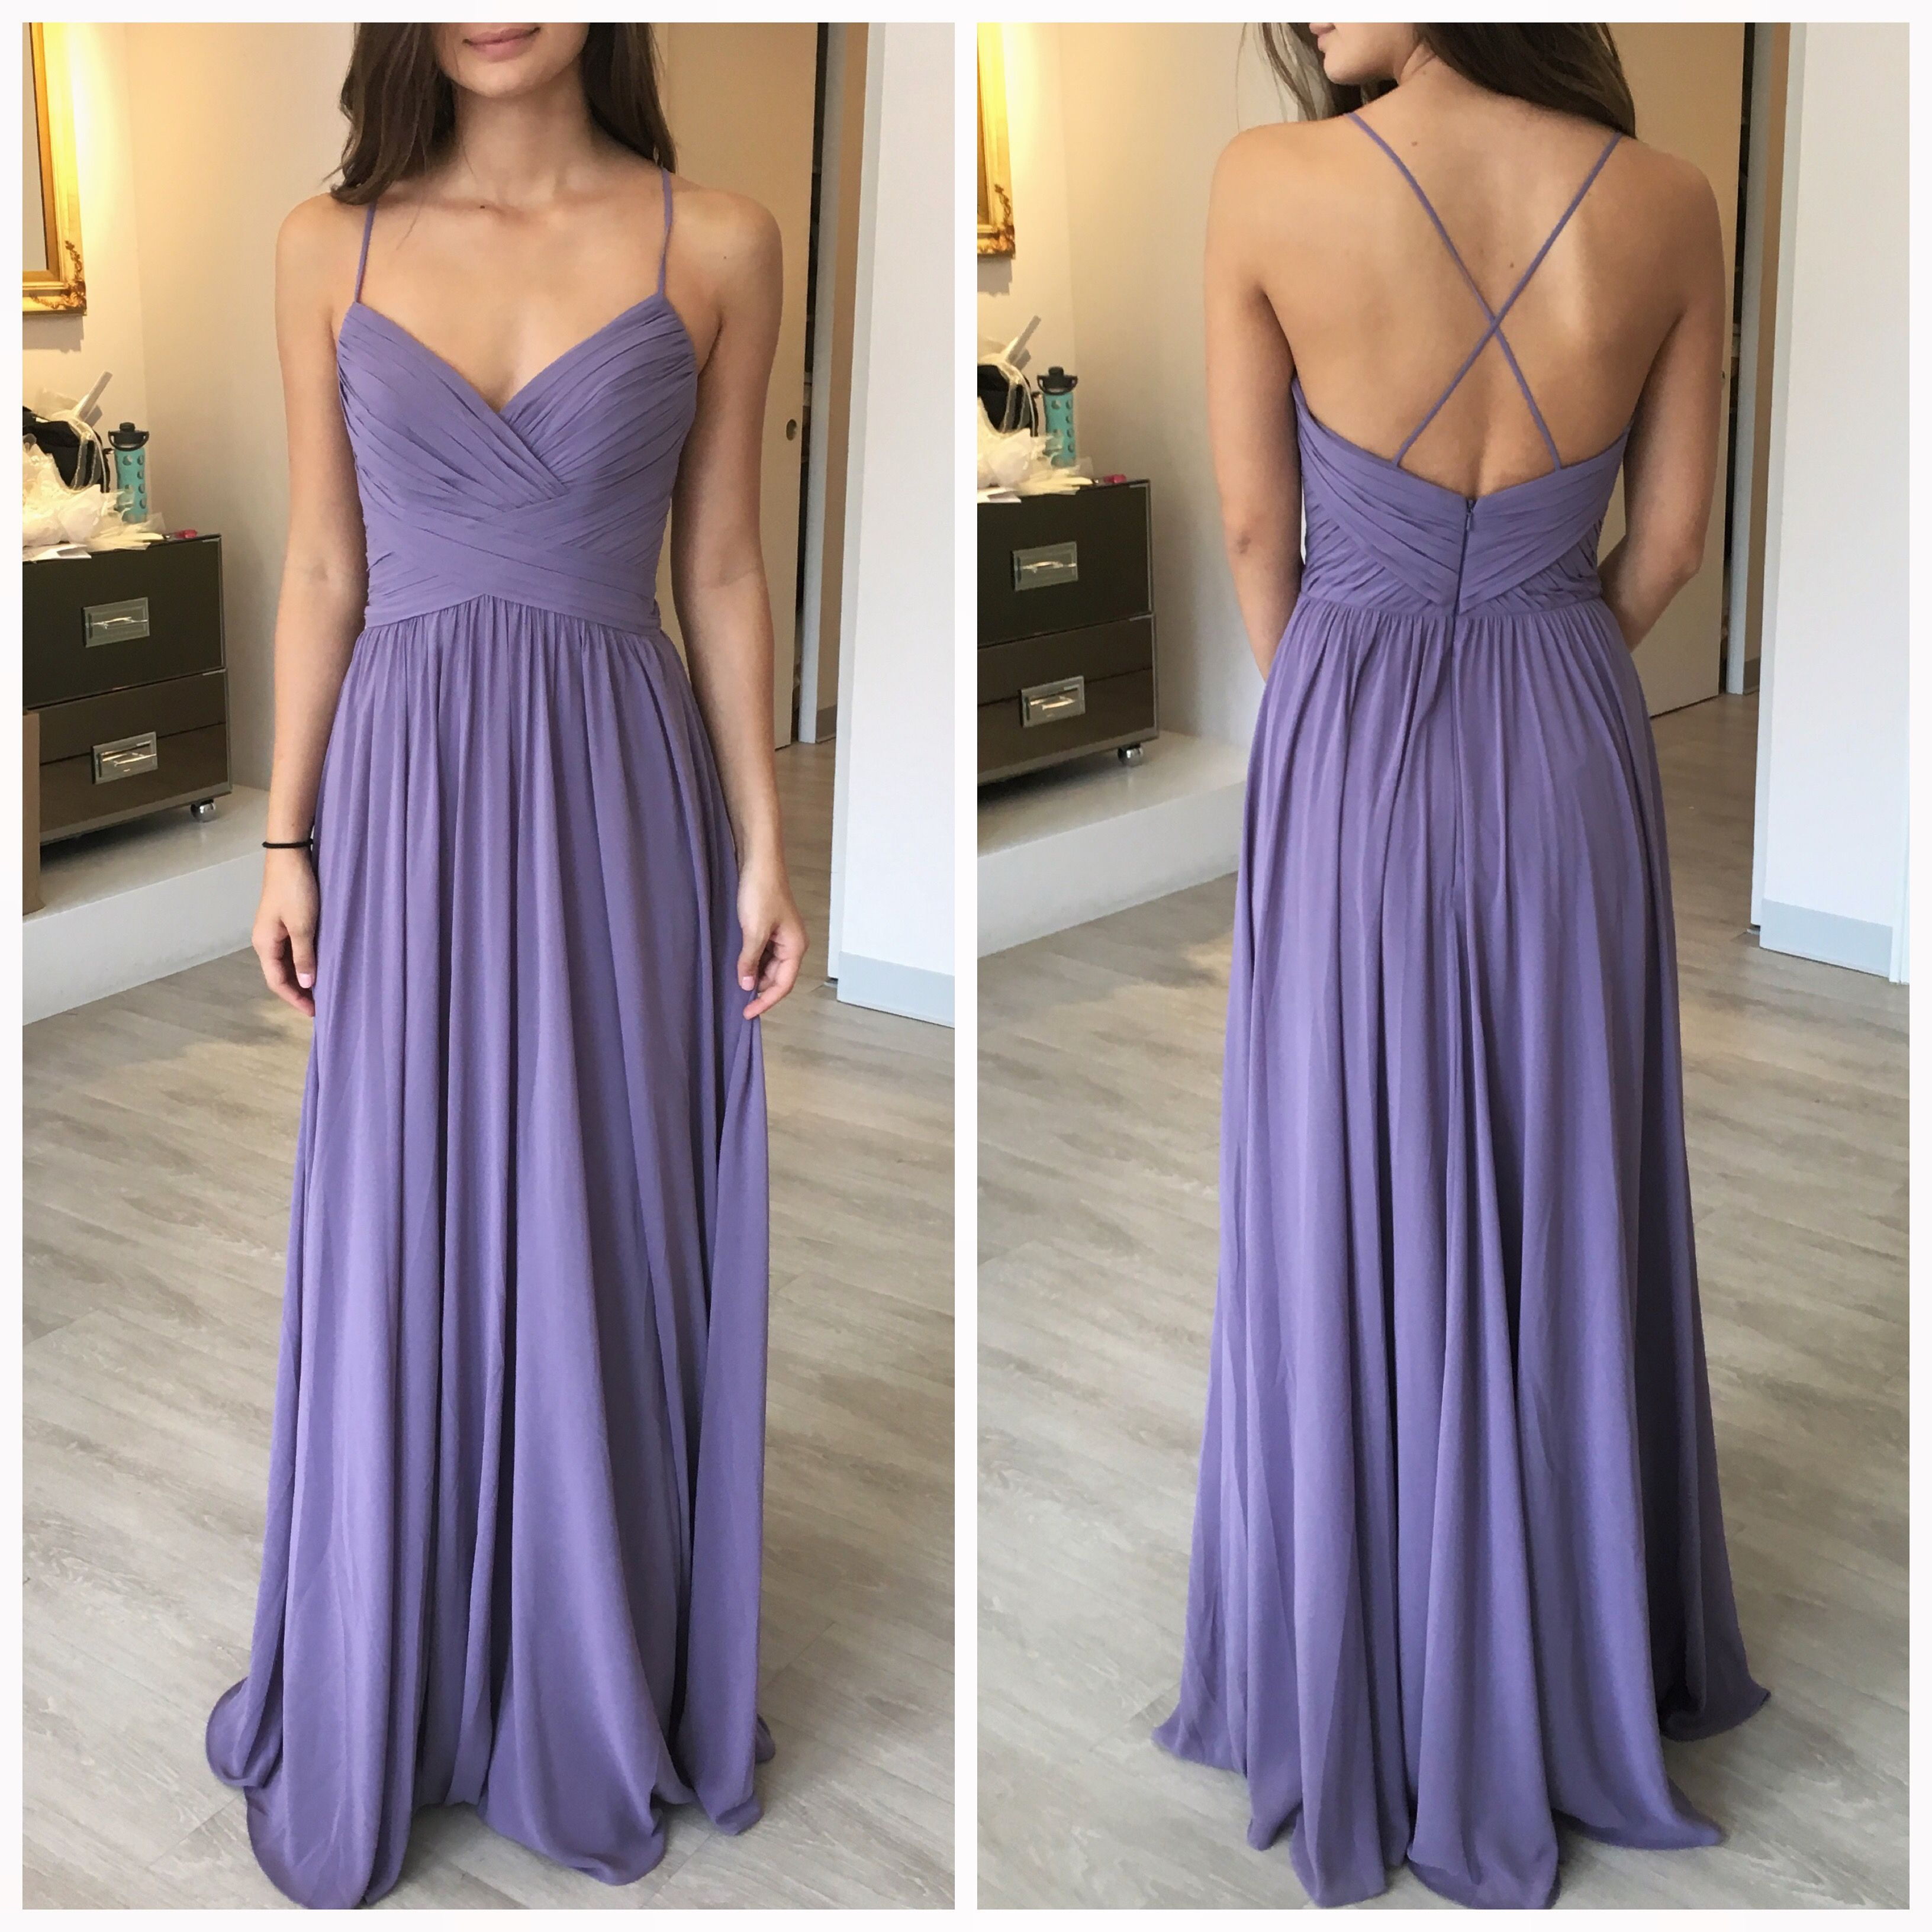 Bridesmaid gown by Hayley Paige Occasions Style 5704 | BRIDESMAIDS ...